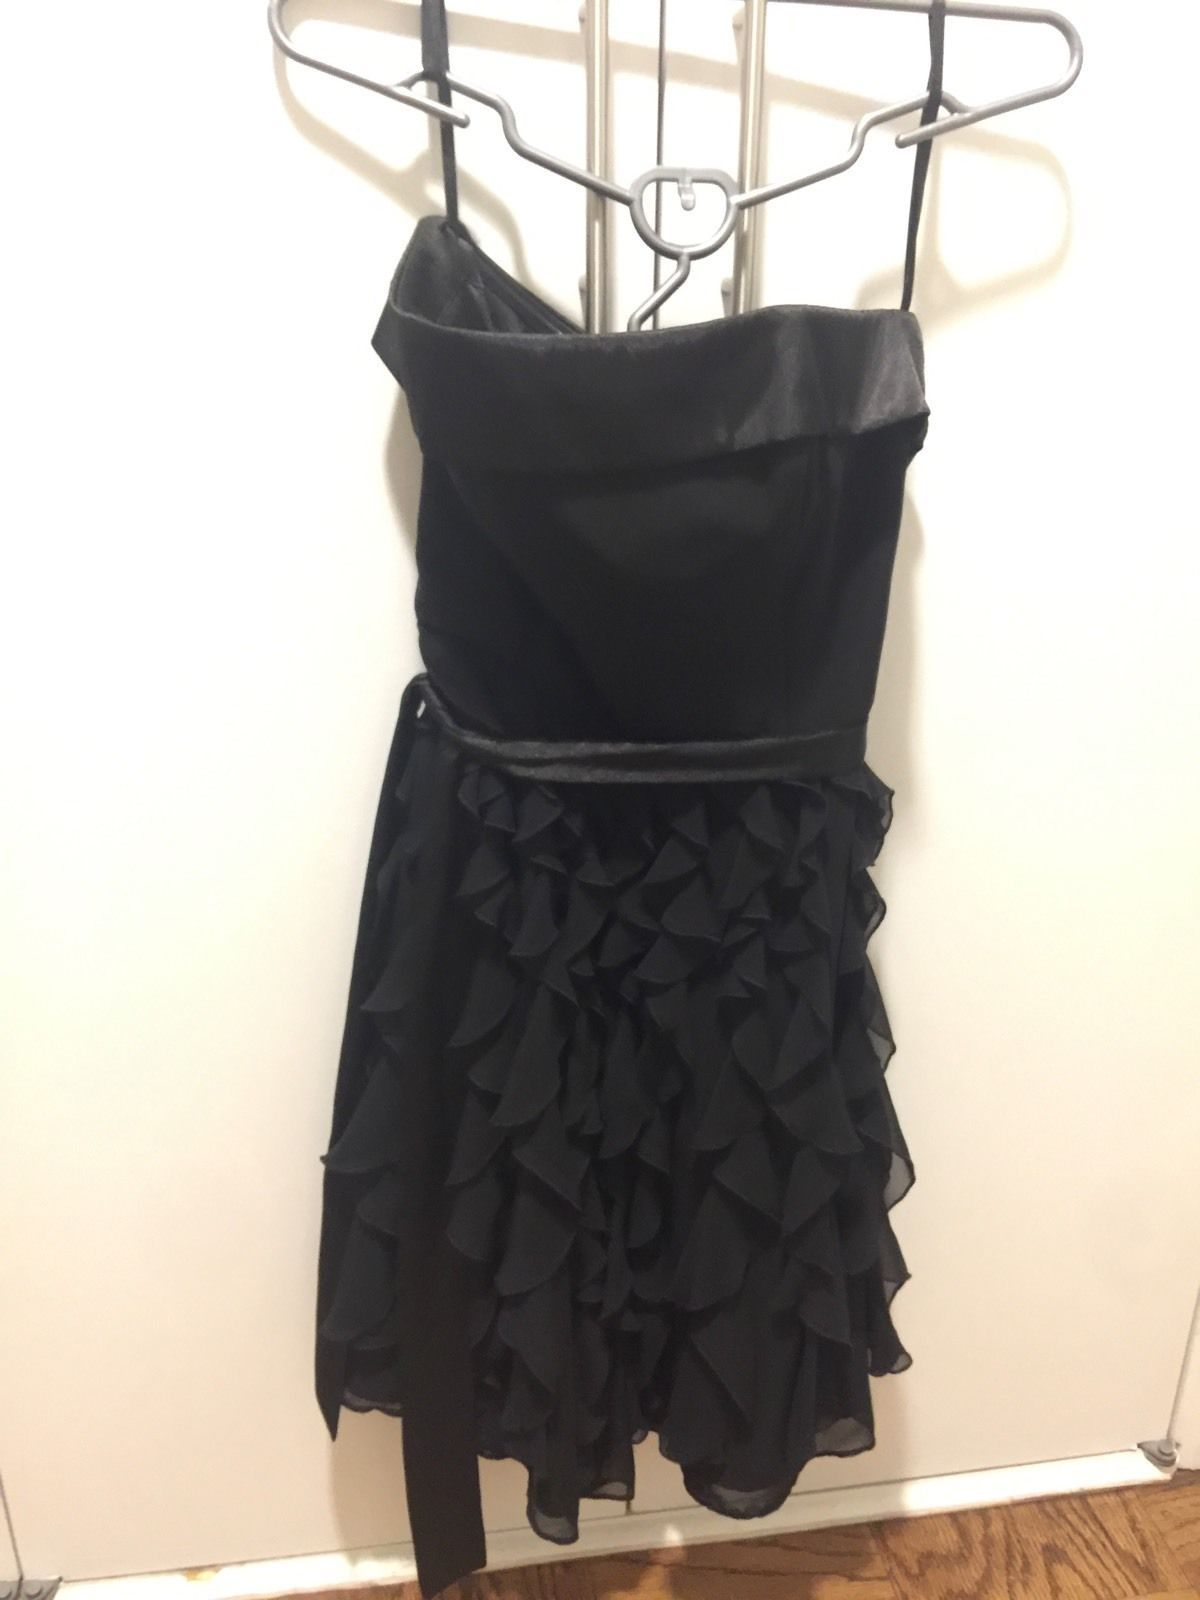 Awesome White House Black Market Black Cocktail Dress 4 PERFECT FOR ...